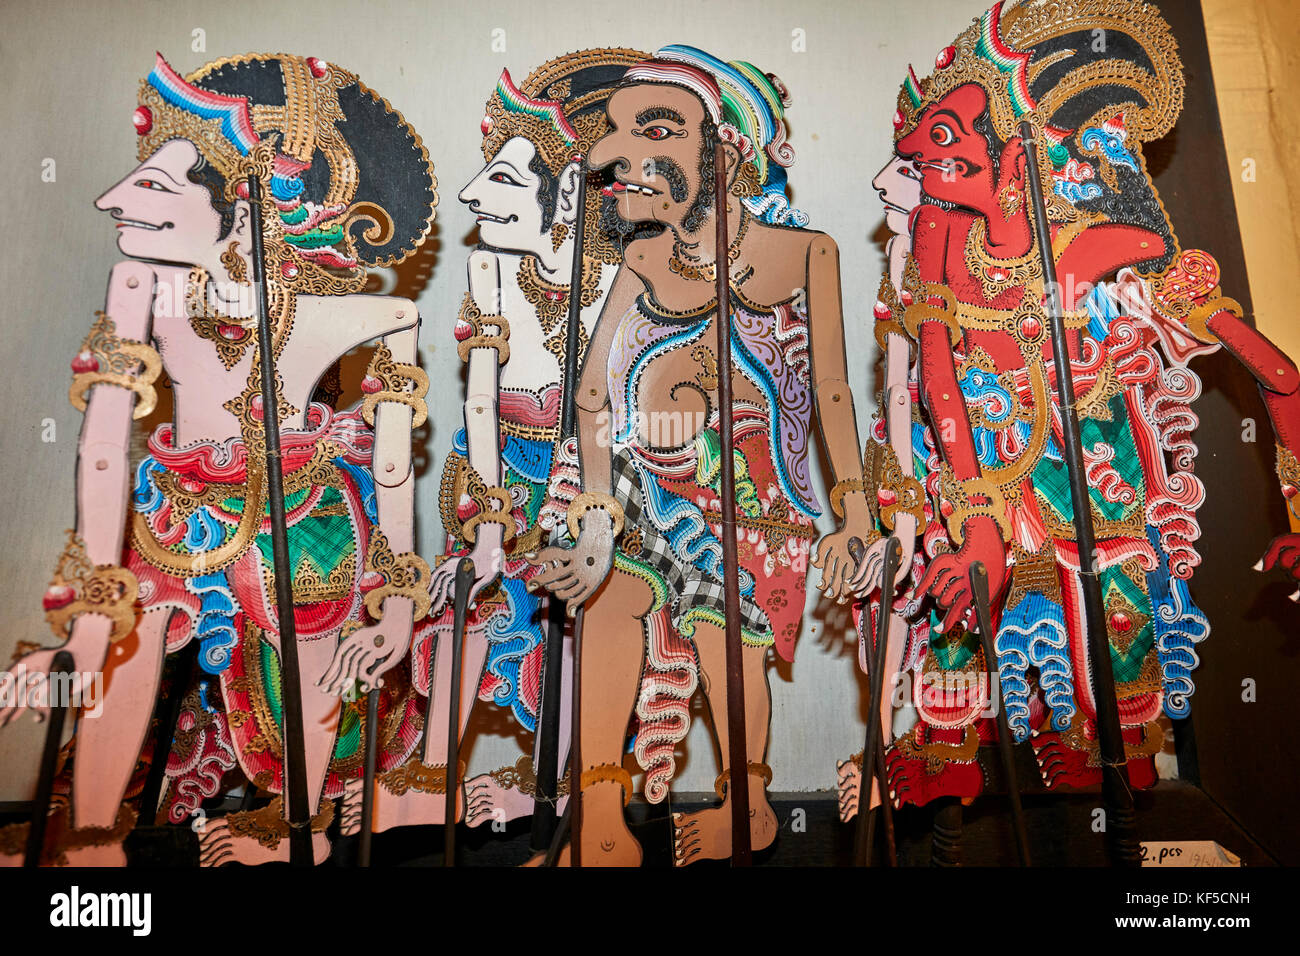 Balinese Shadow Puppets for Calon Arang performance. Setia Darma House of Masks and Puppets, Mas, Ubud, Bali, Indonesia. - Stock Image